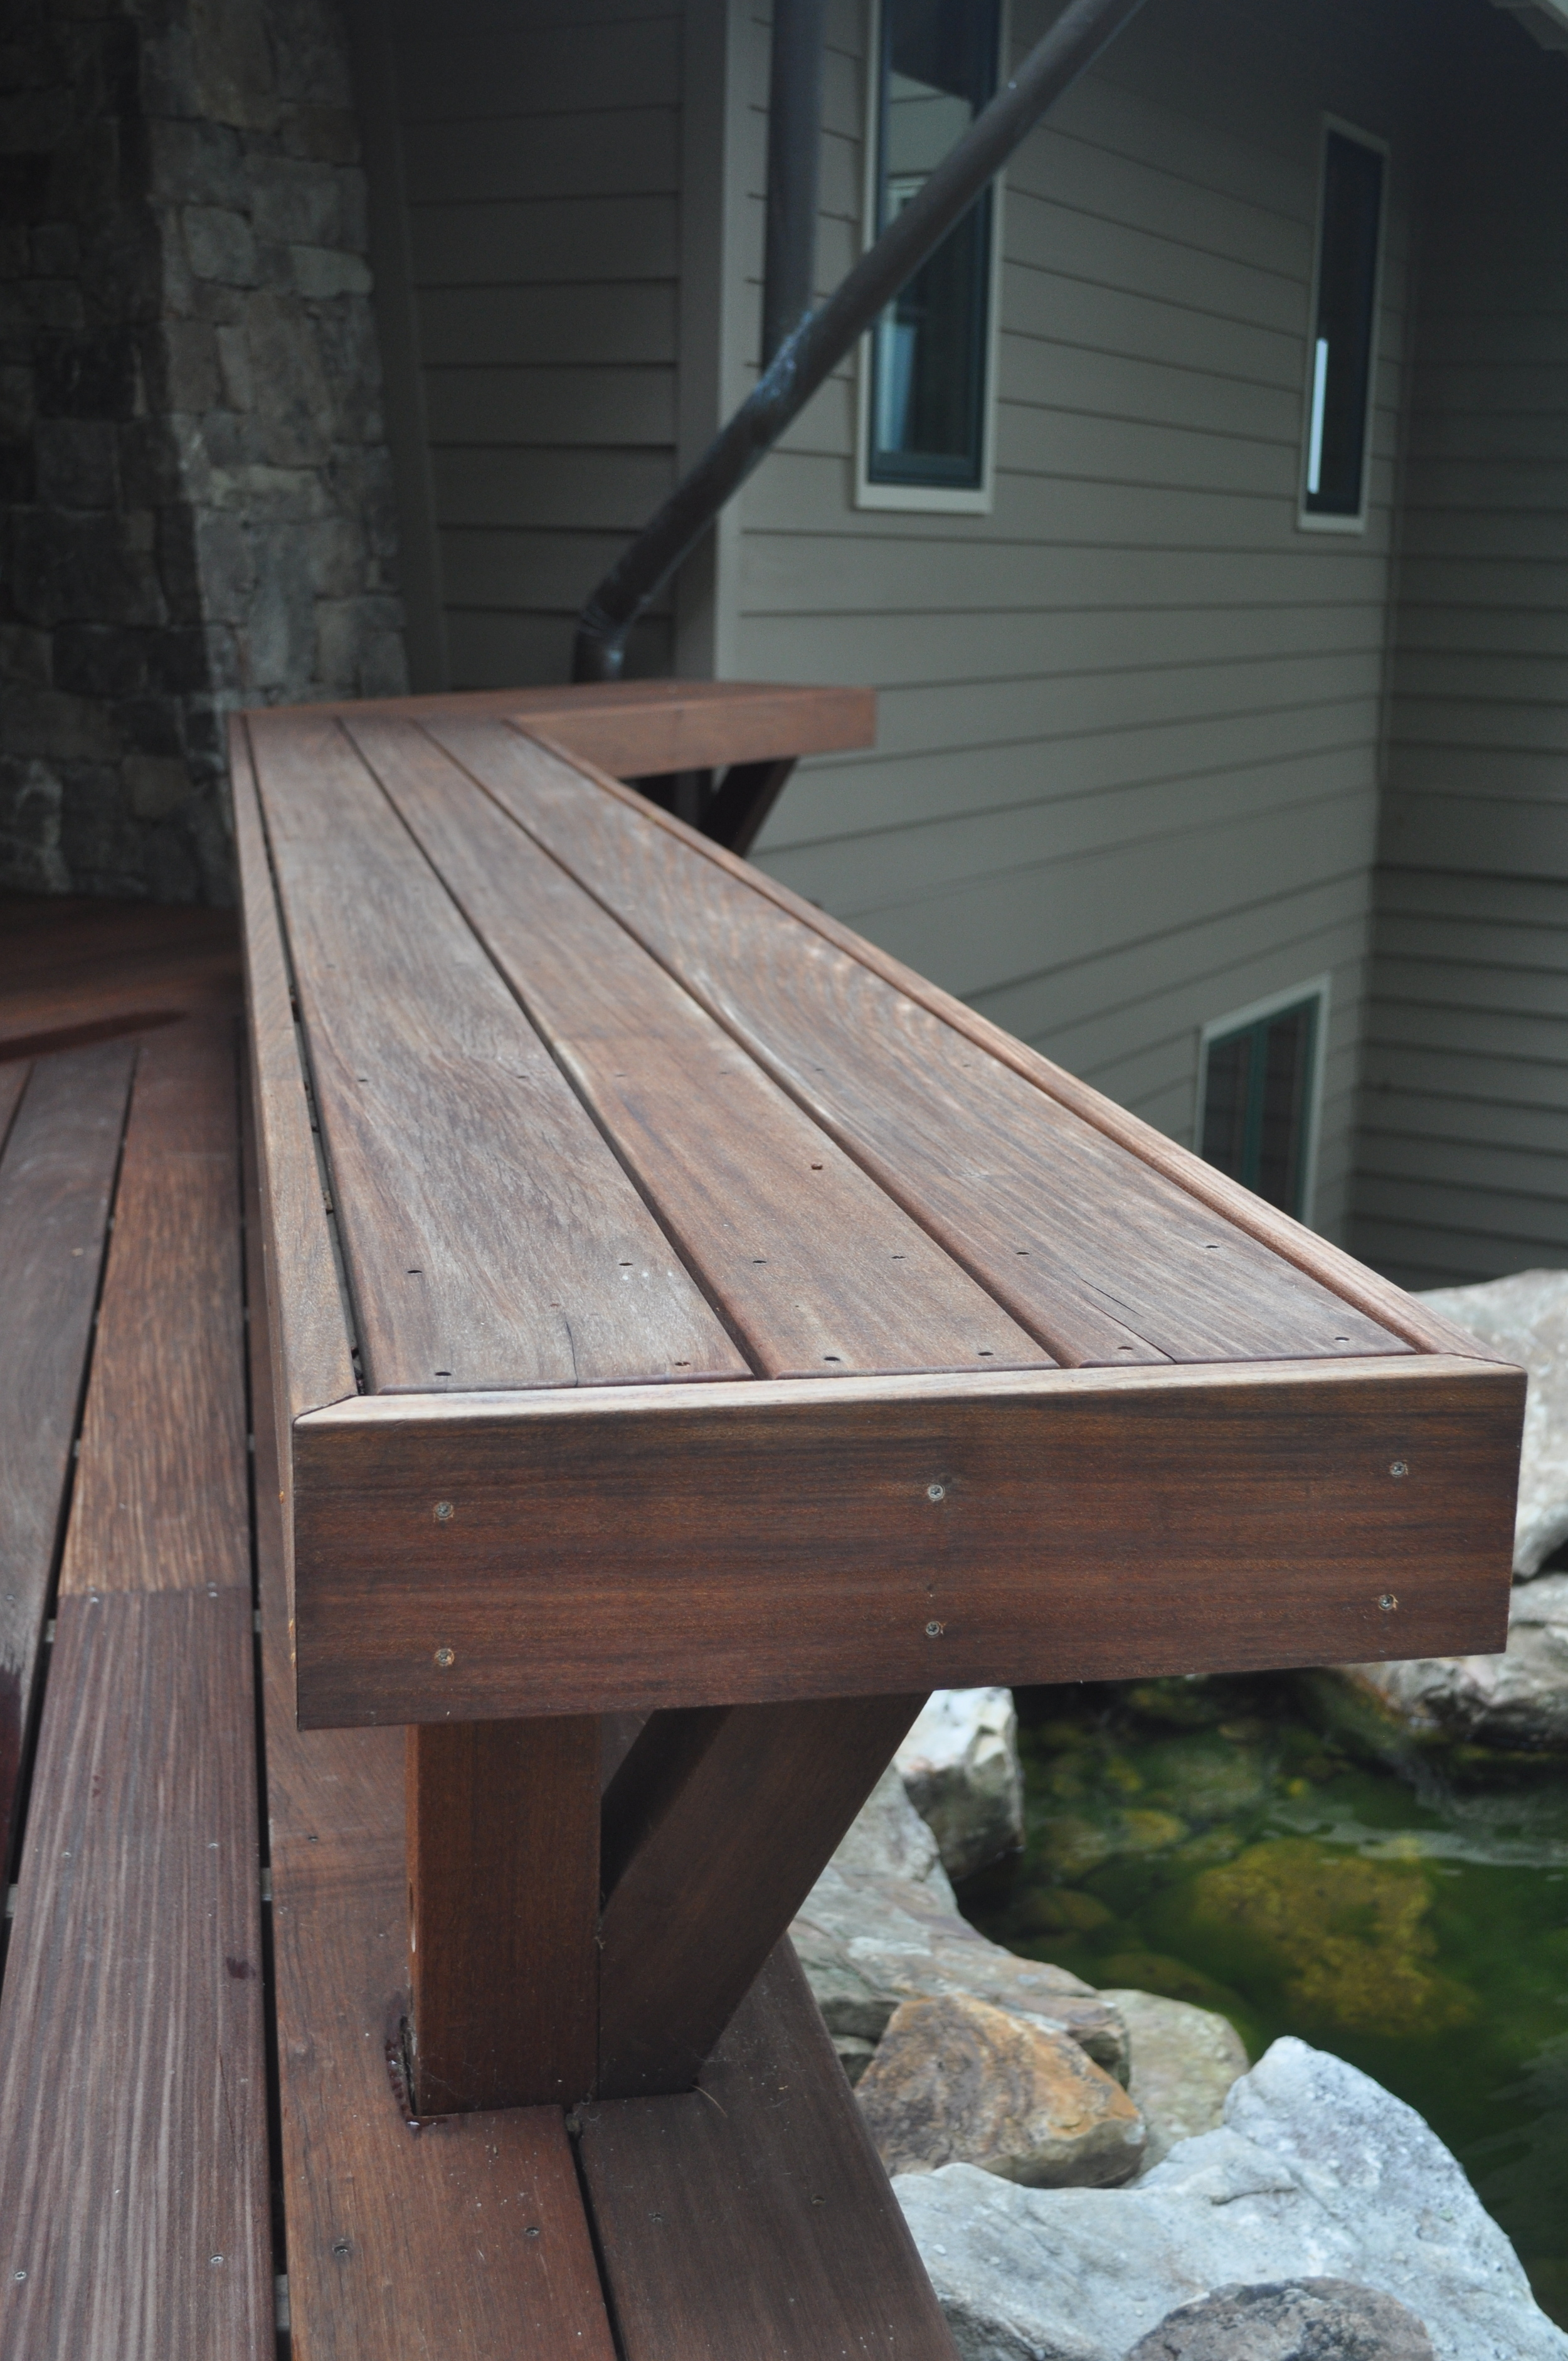 Boone/Jamison Residence, Detail of bench located on the catwalk deck that leads to front entry .